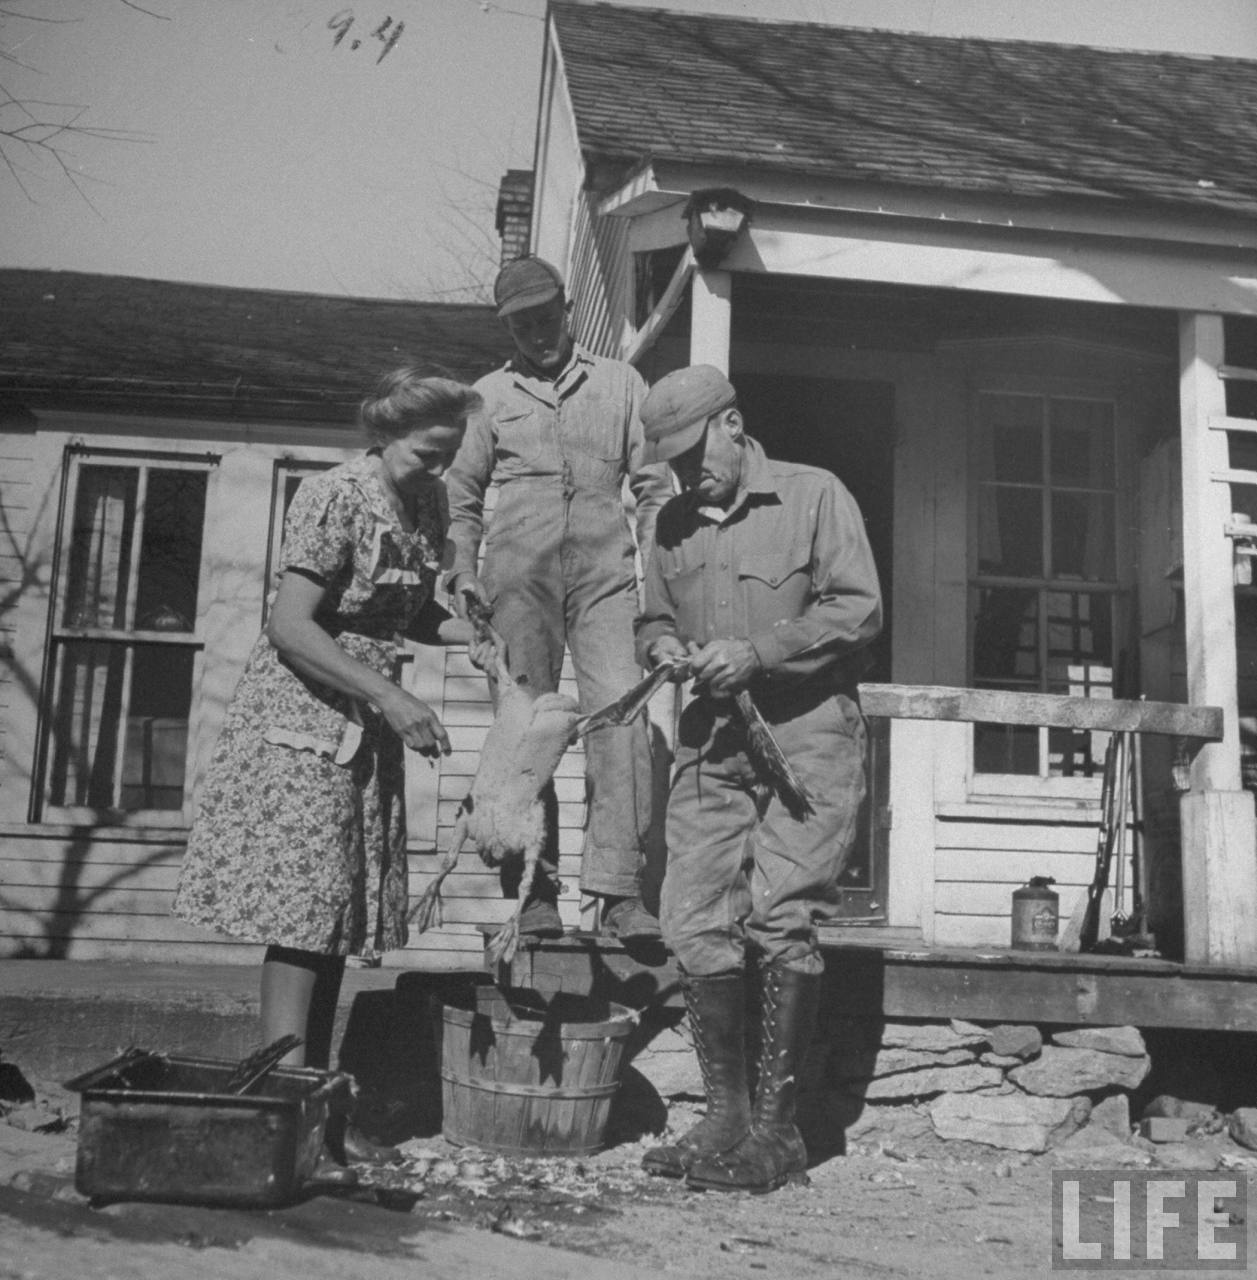 James F. Irwin (R), his wife and son preparing a goose for an early Christmas dinner to celebrate safe return of sons and sons-in-law from WW II.© Time Inc. Myron Davis